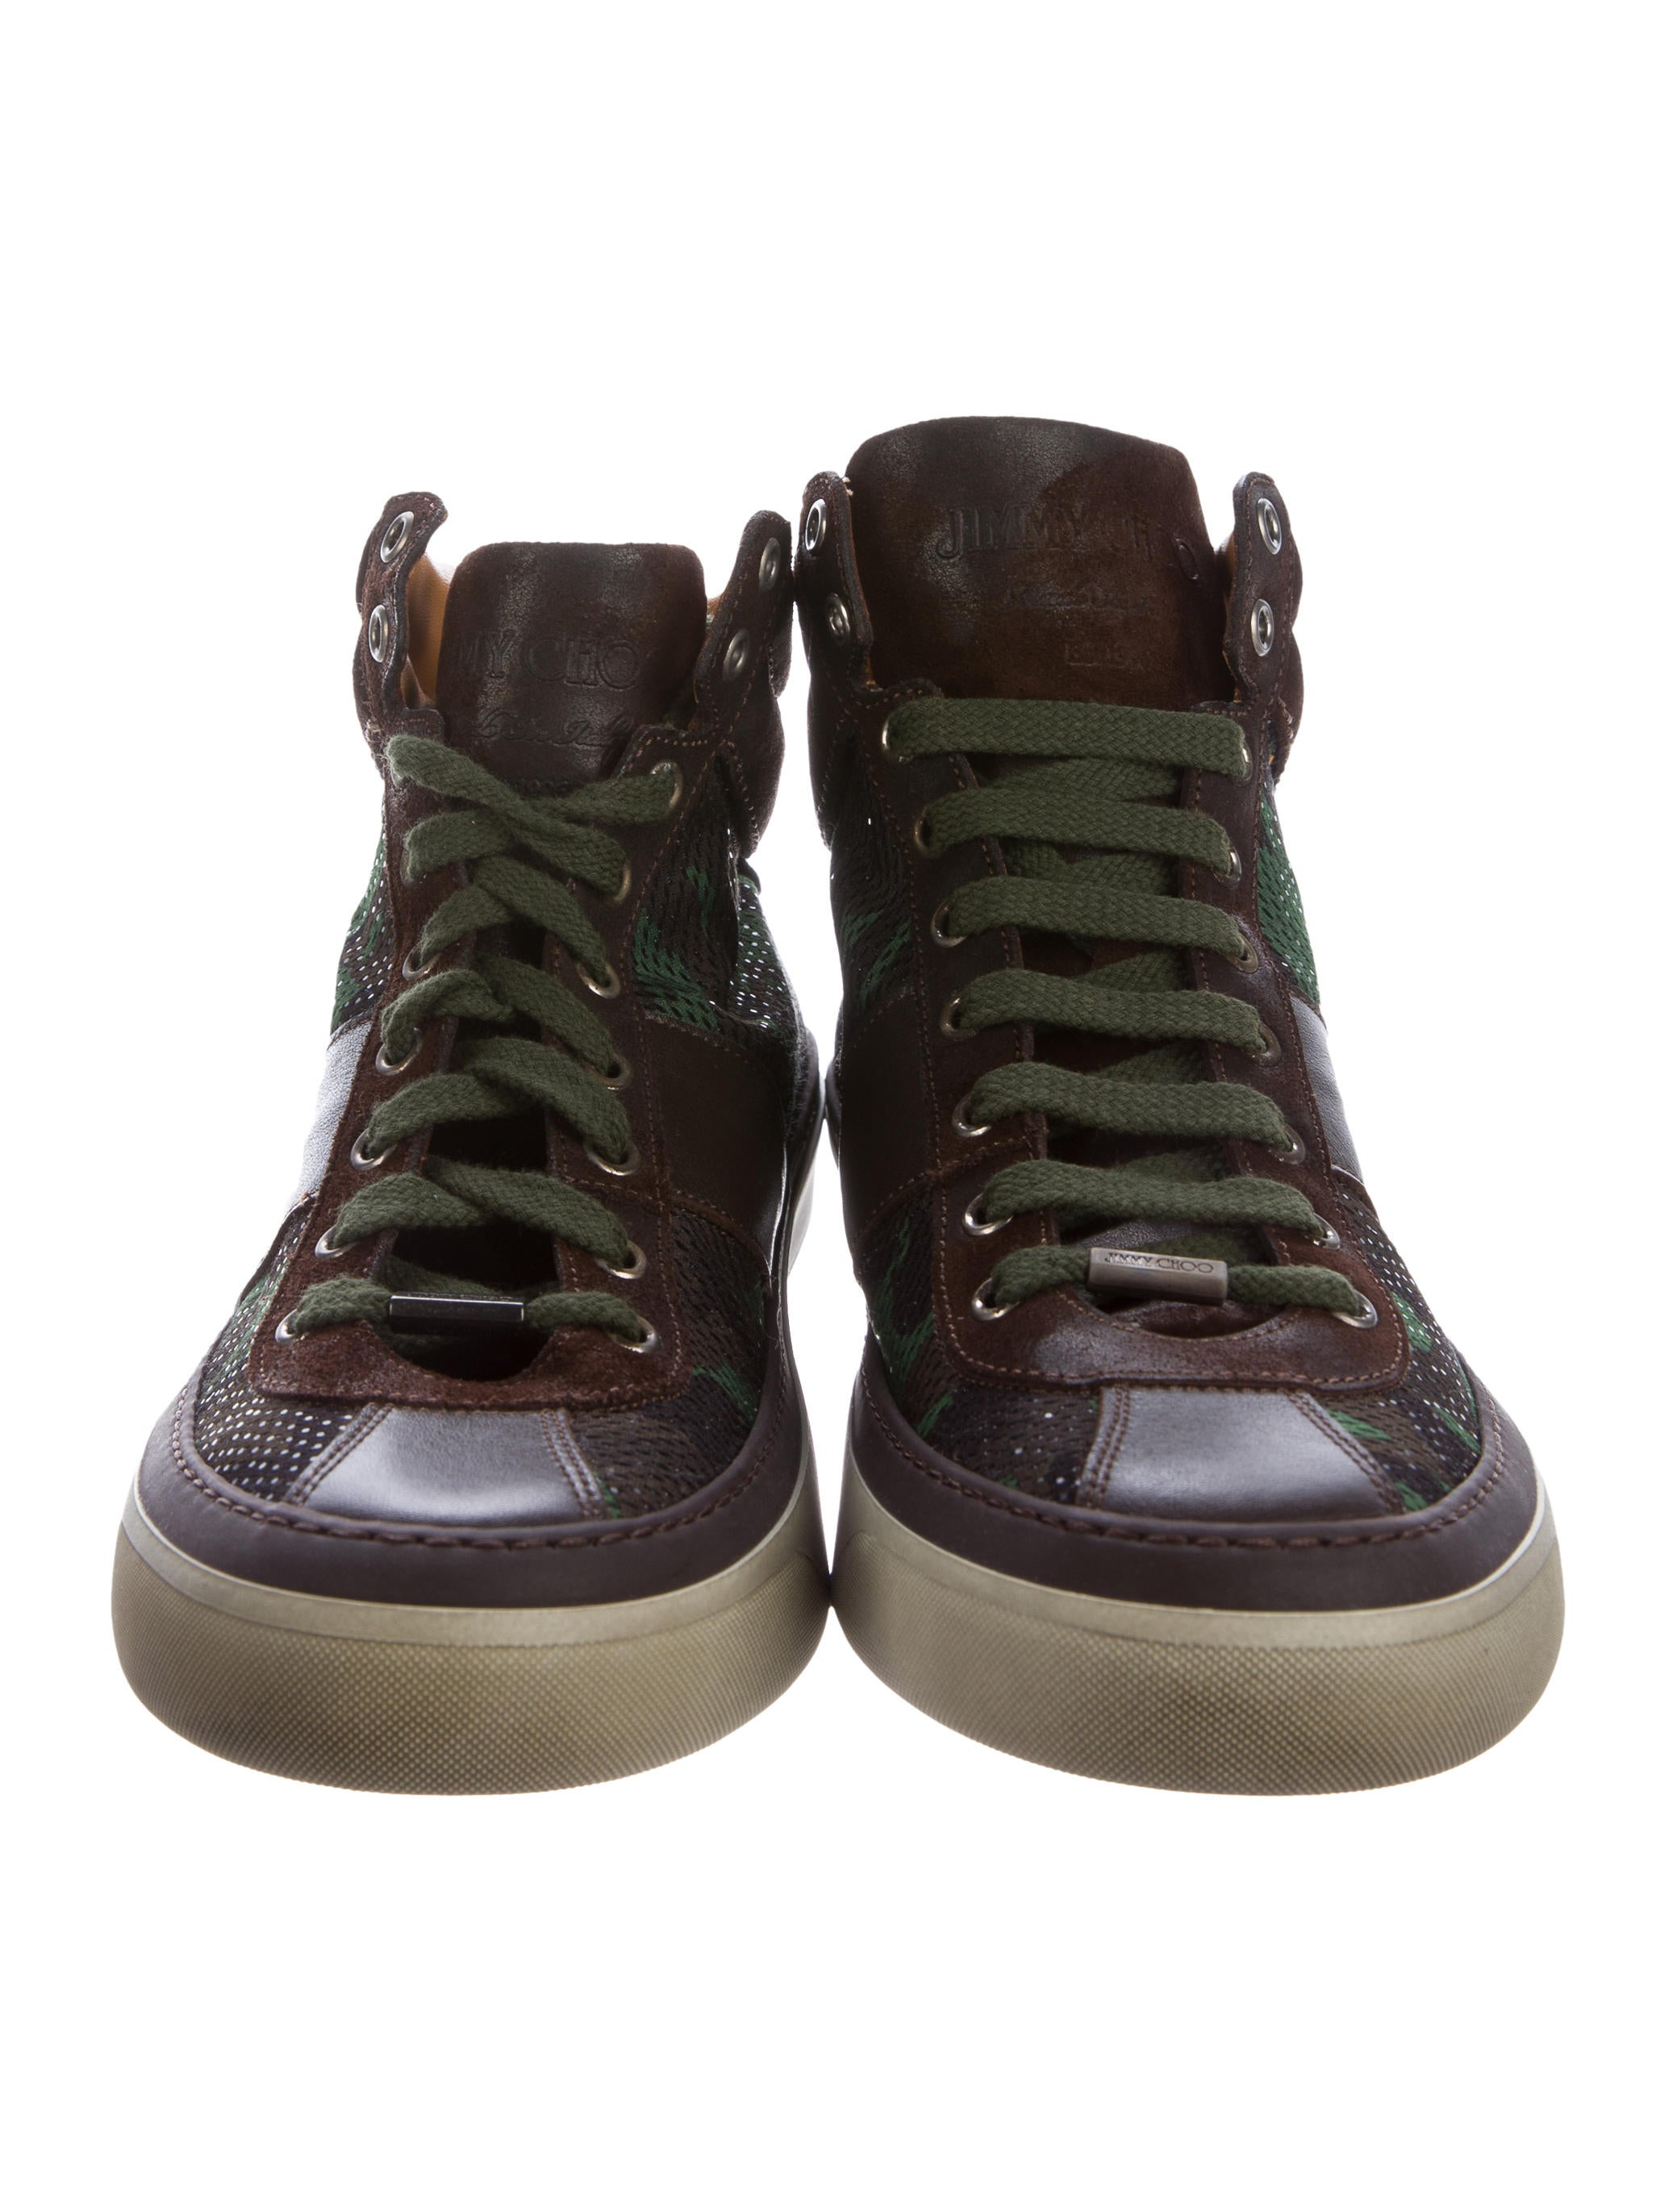 jimmy choo belgravia camouflage sneakers shoes jim69262 the realreal. Black Bedroom Furniture Sets. Home Design Ideas